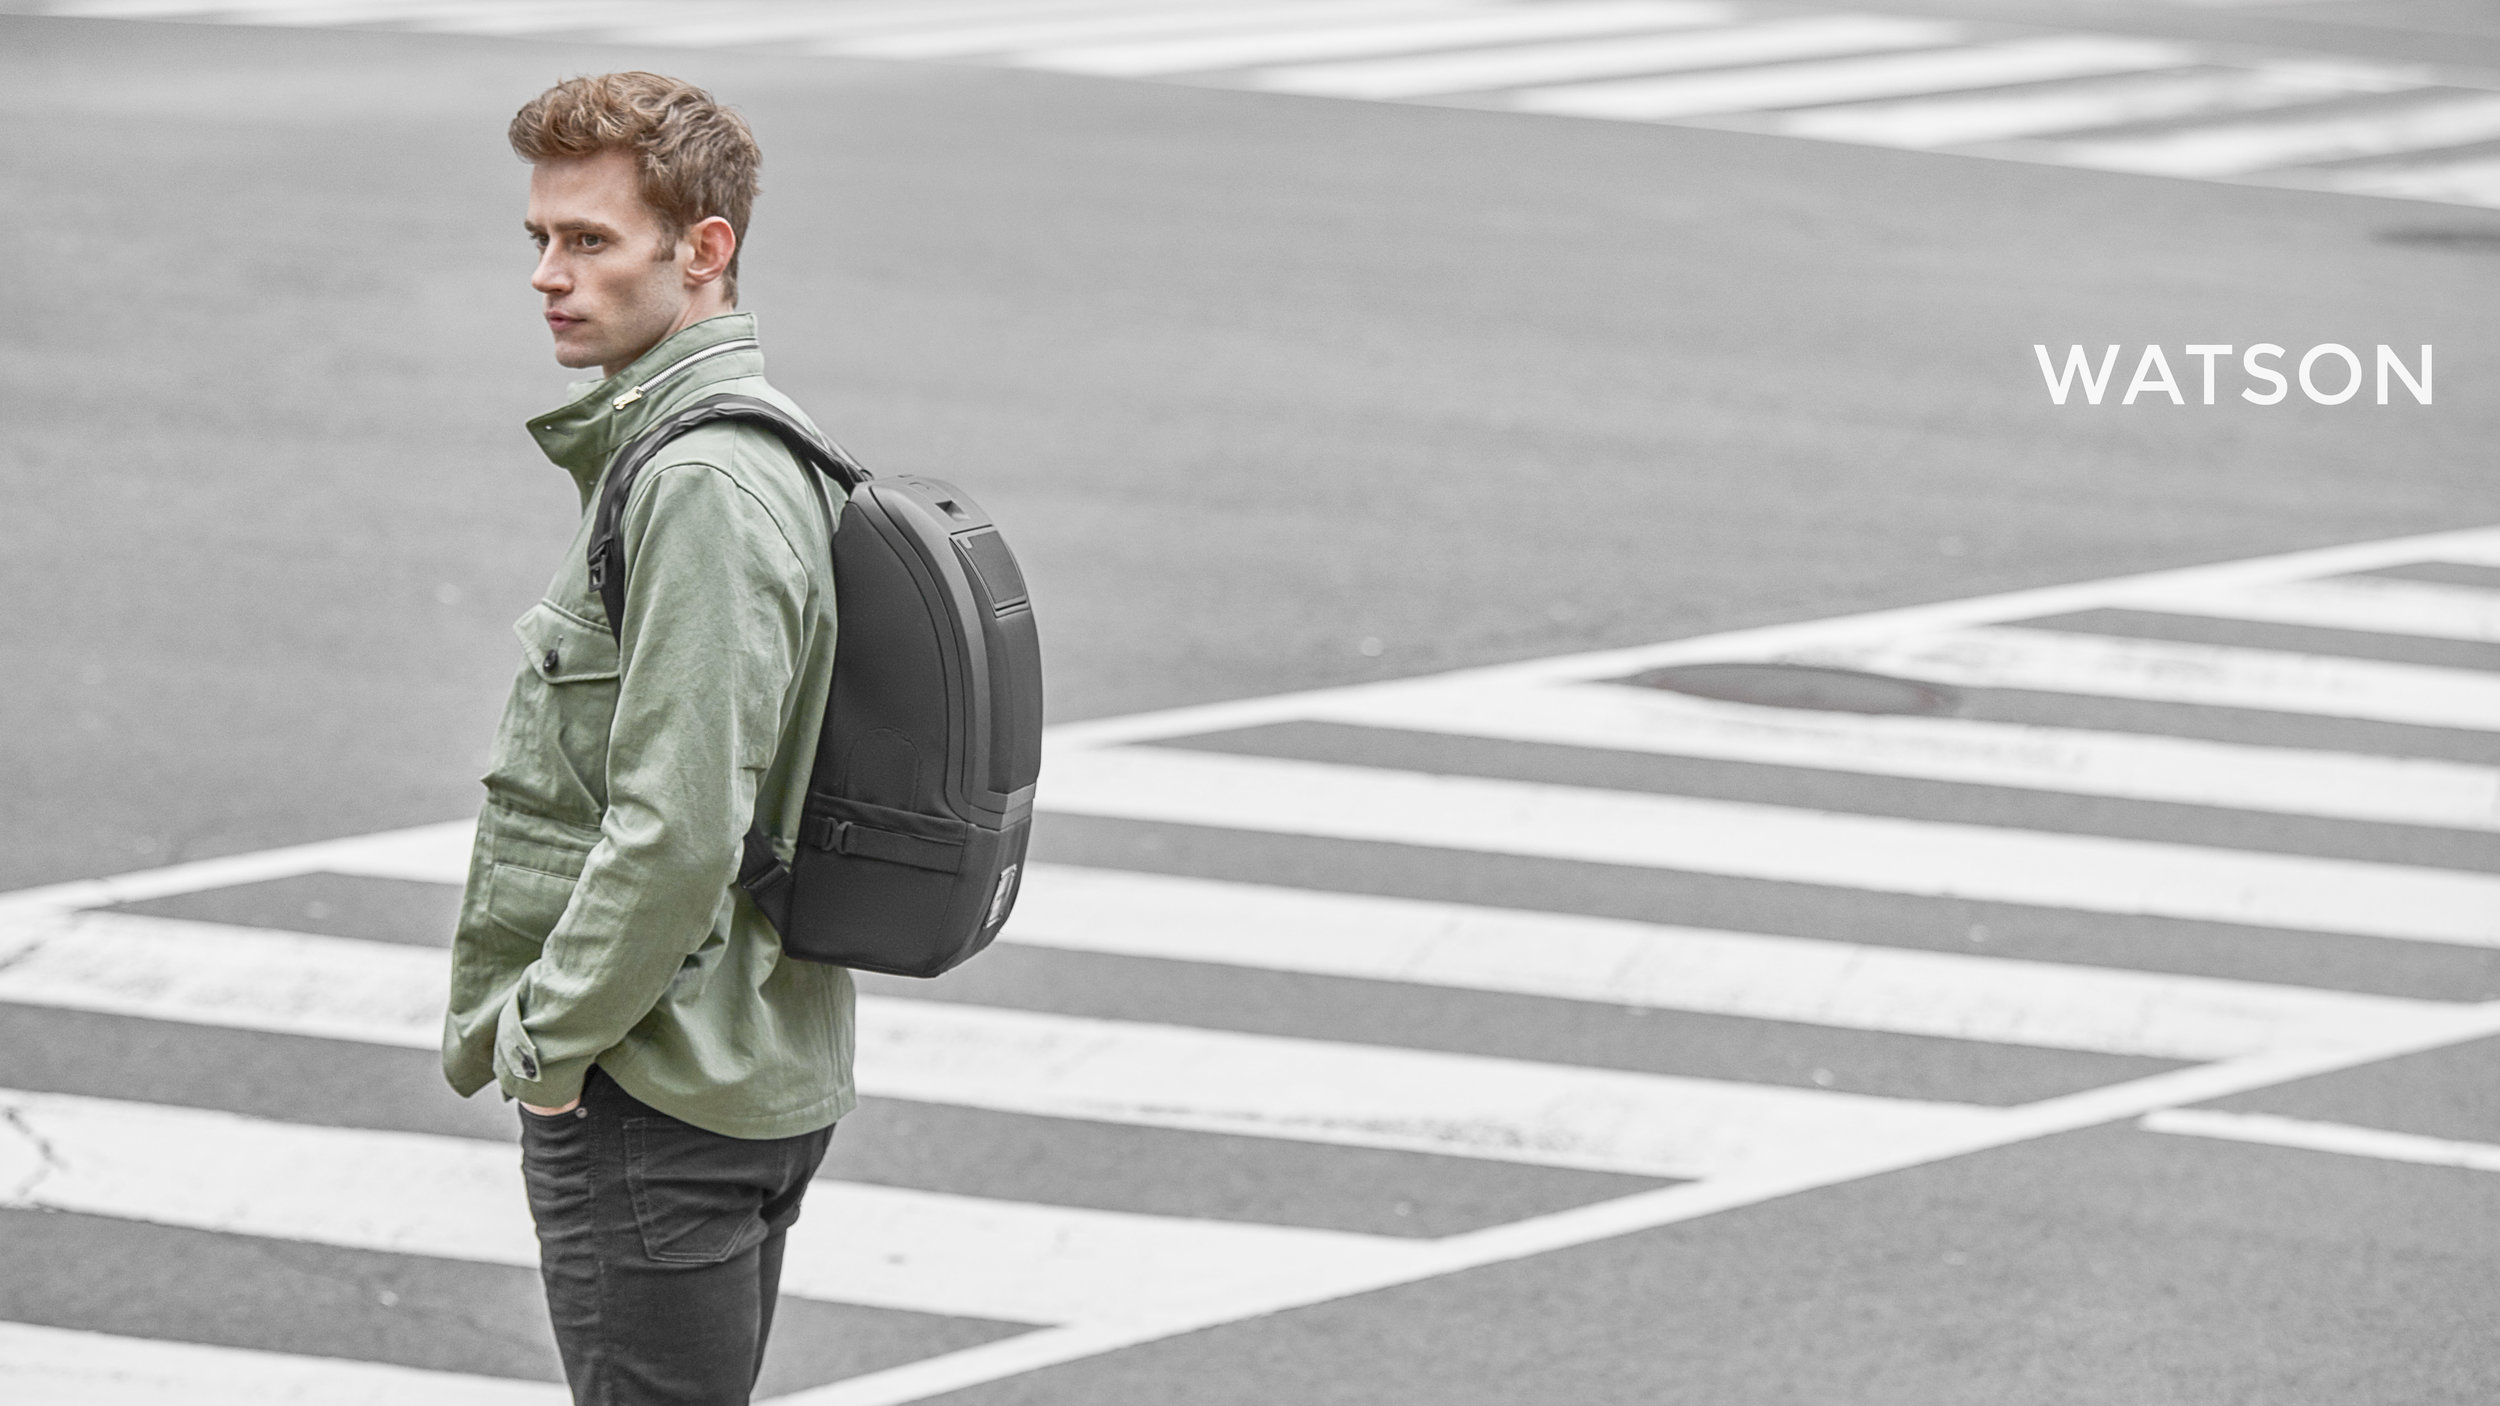 Watson Backpack Campaign